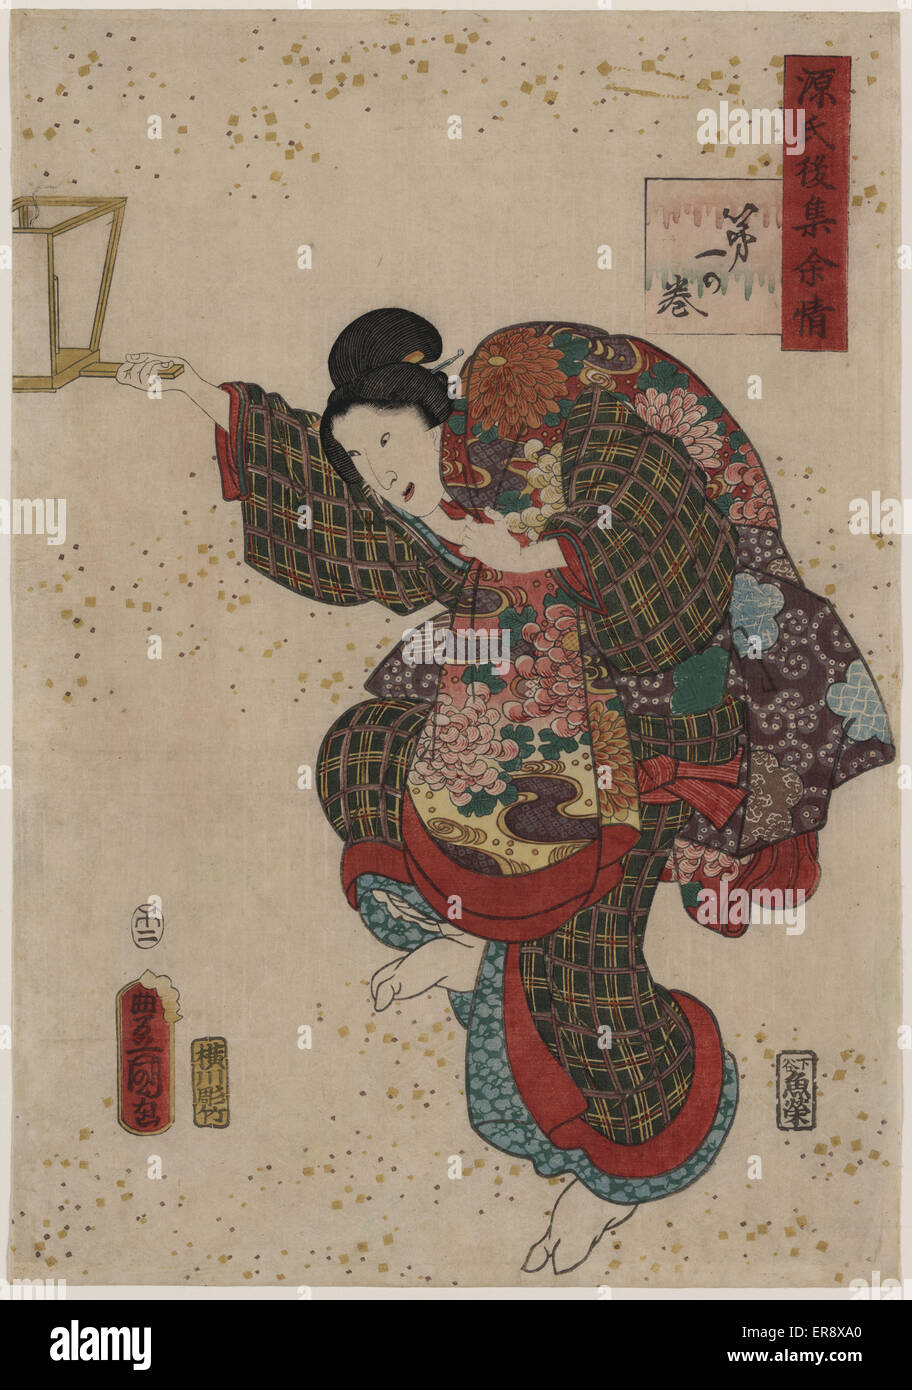 Volume one. Print shows a person, possibly Kiritsubo, holding a lantern in right hand and a blanket over left shoulder. - Stock Image